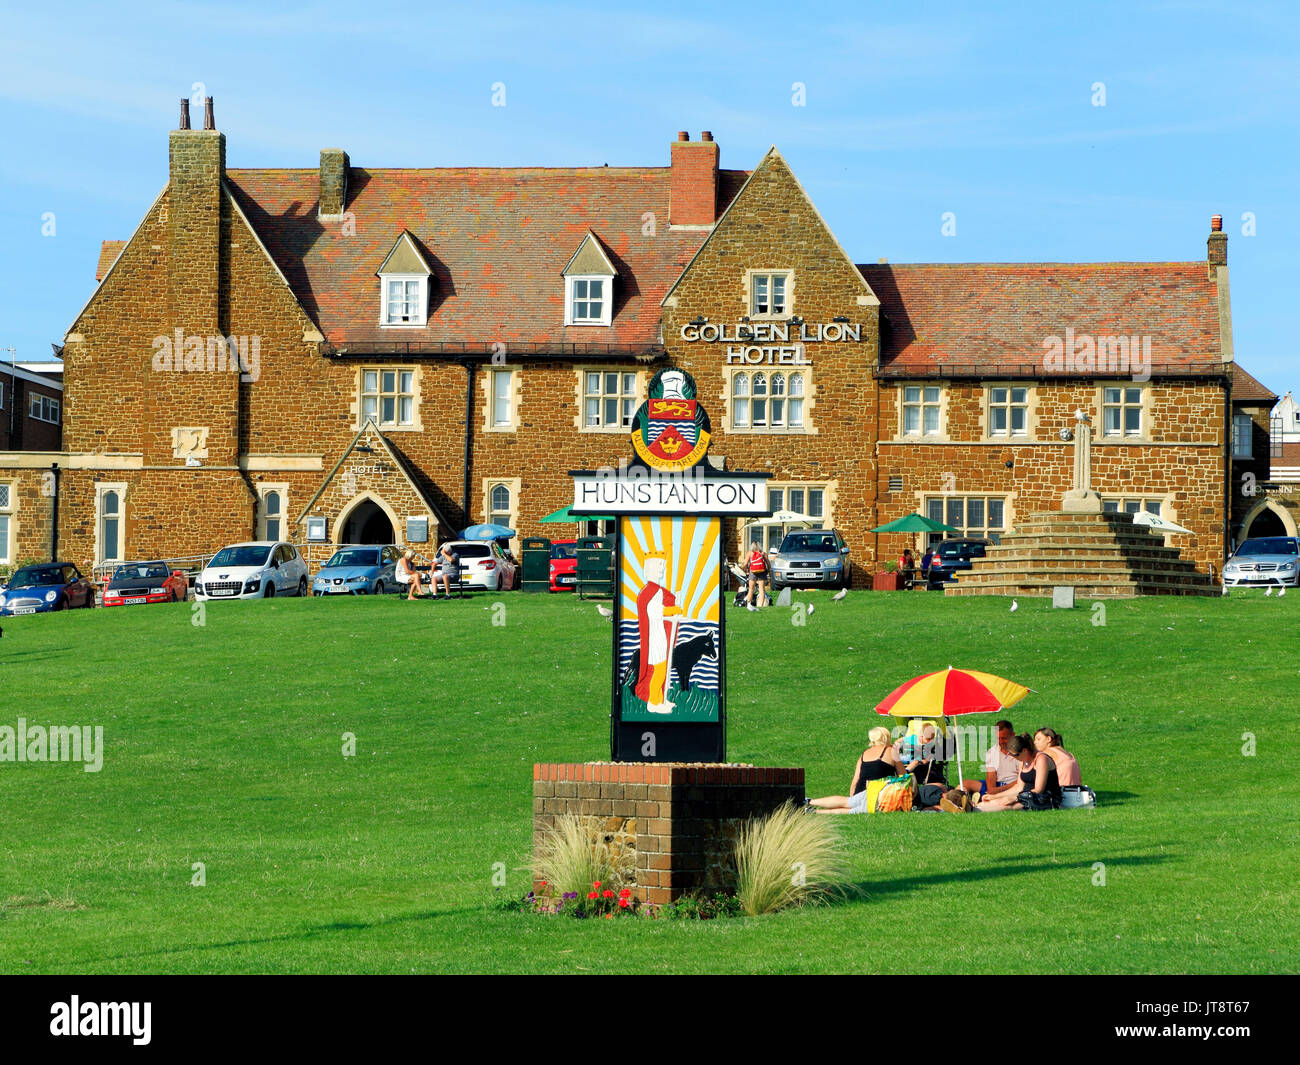 Hunstanton Green, Town Sign, picnic, Golden Lion Hotel, Norfolk, England, UK, seaside, resort - Stock Image